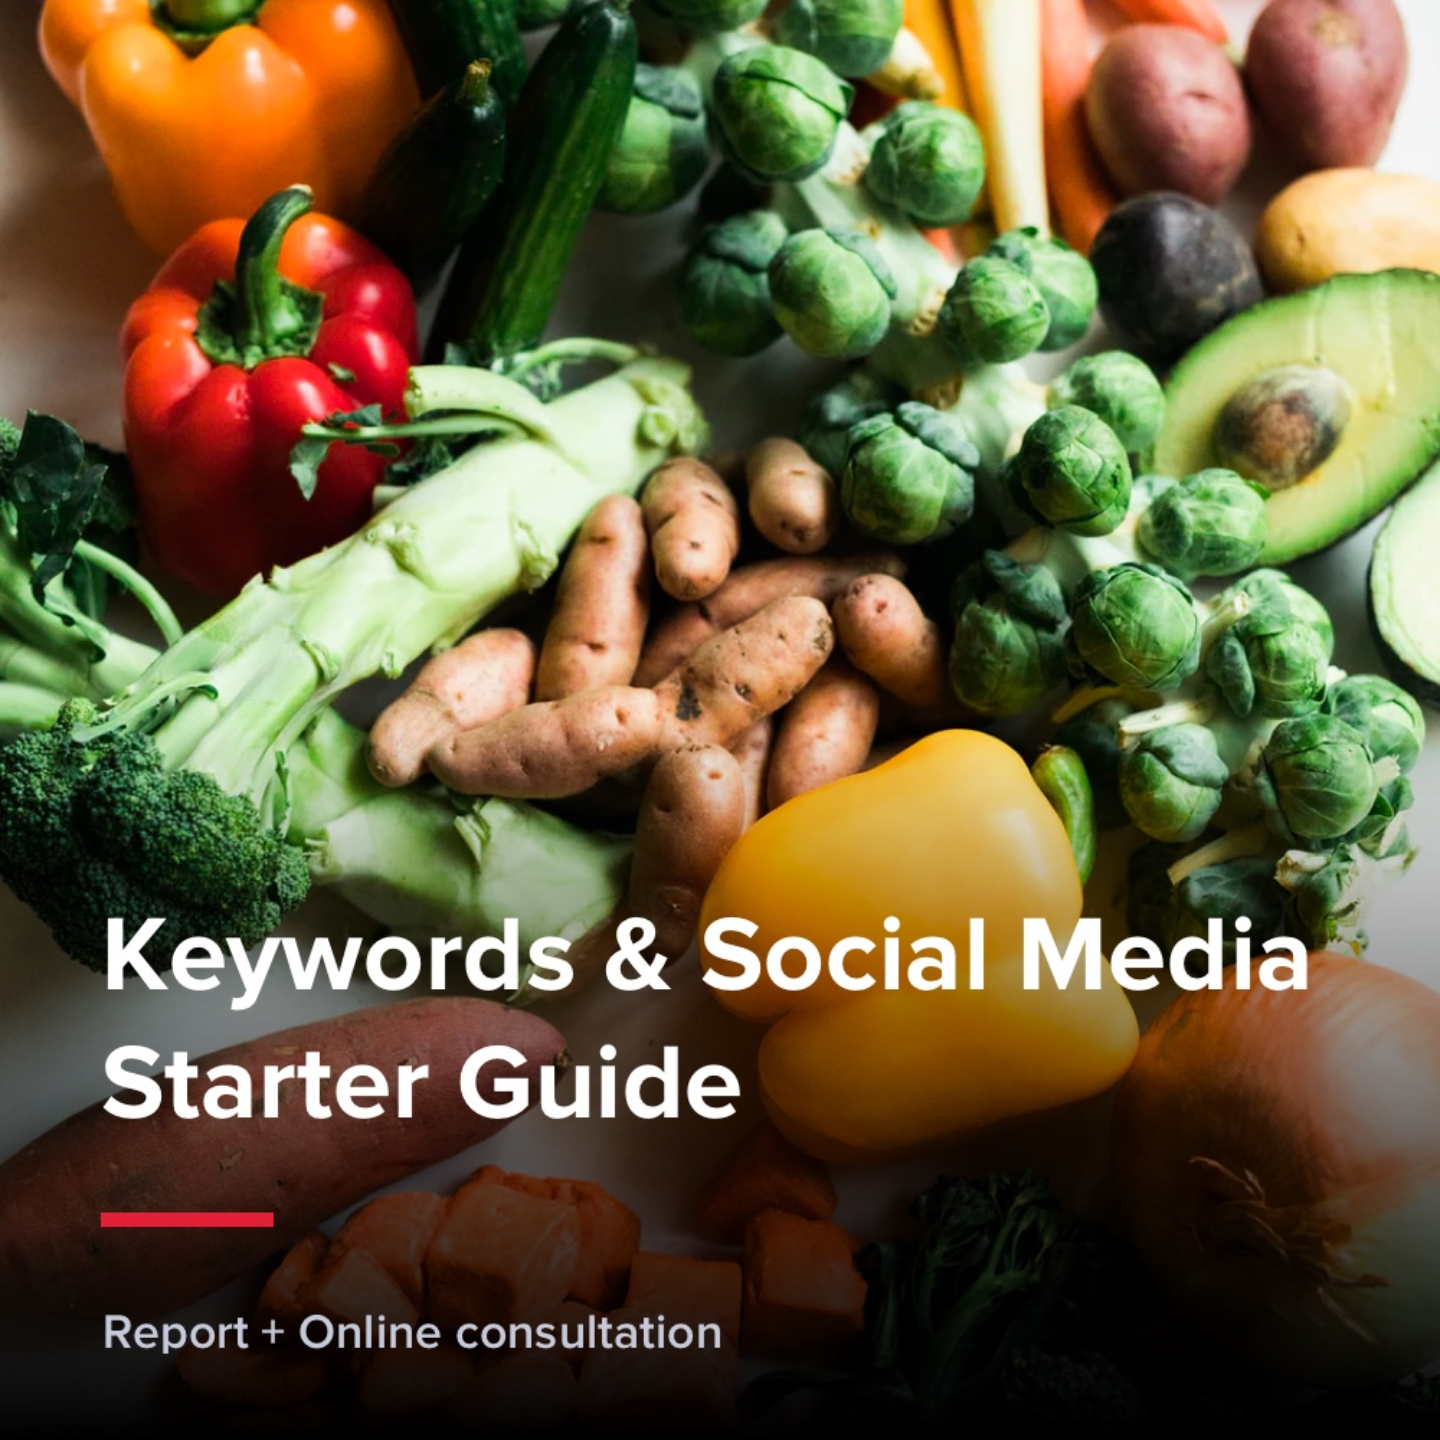 Keywords & Social Media Starter Guide - Food & Groceries